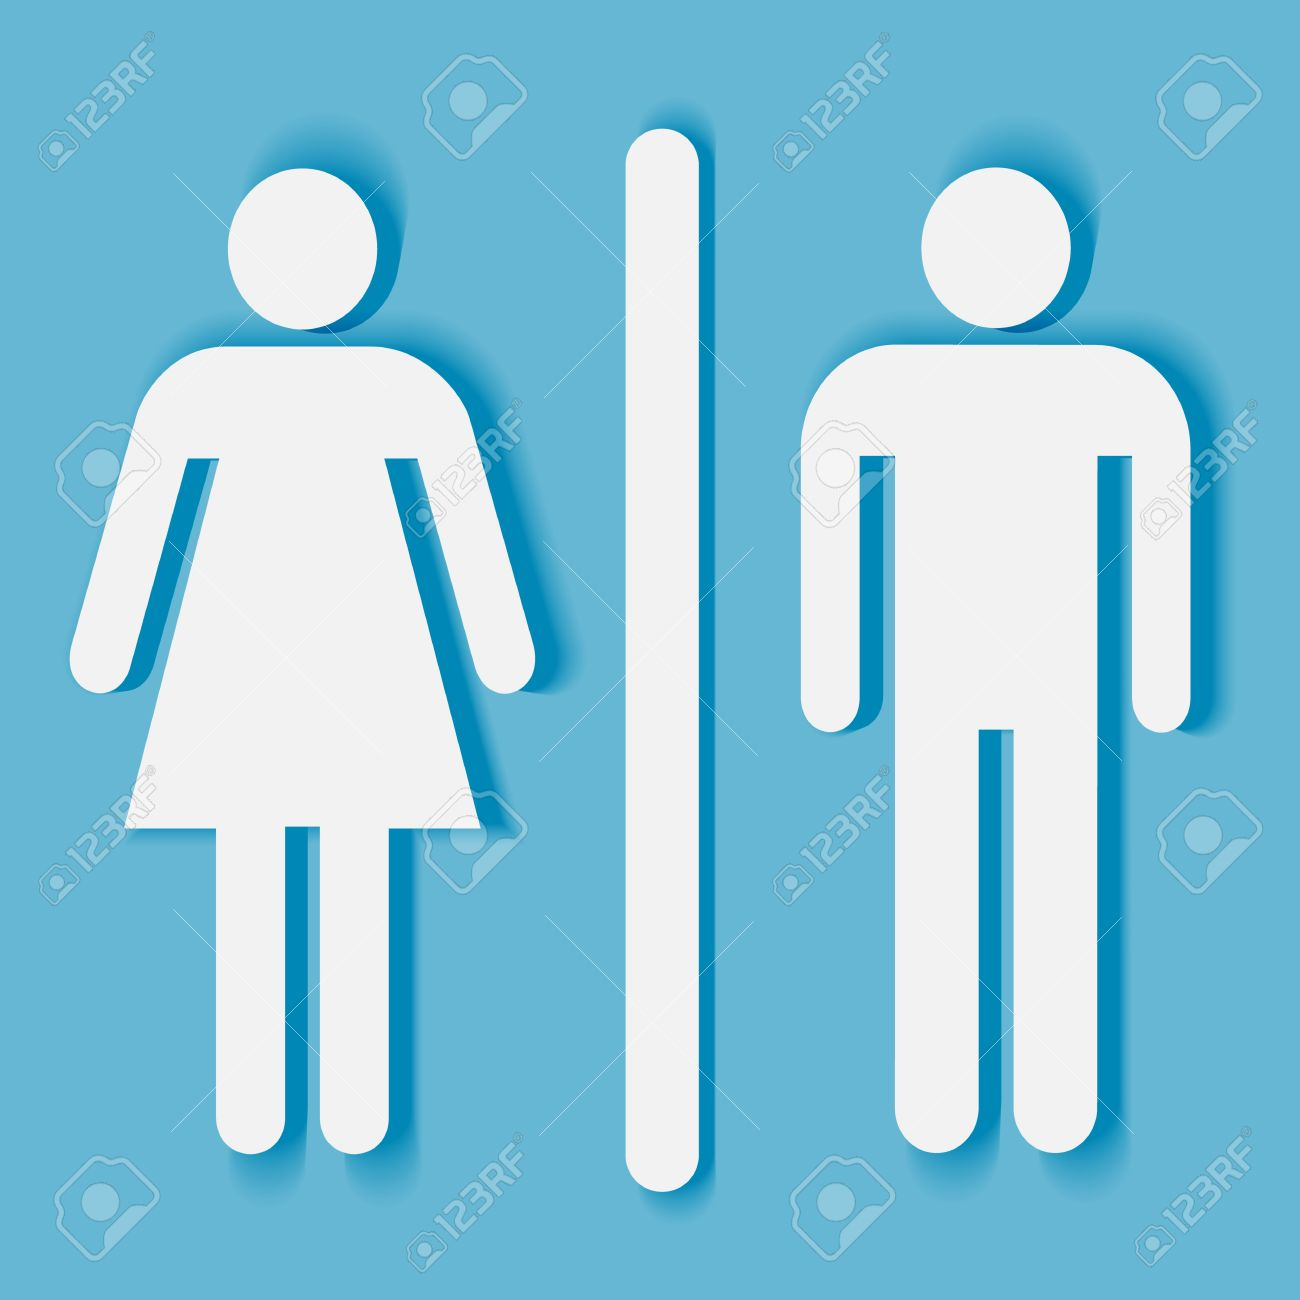 Bathroom Sign Man And Woman bathroom or toilet sign and symbol: man and woman silhouette